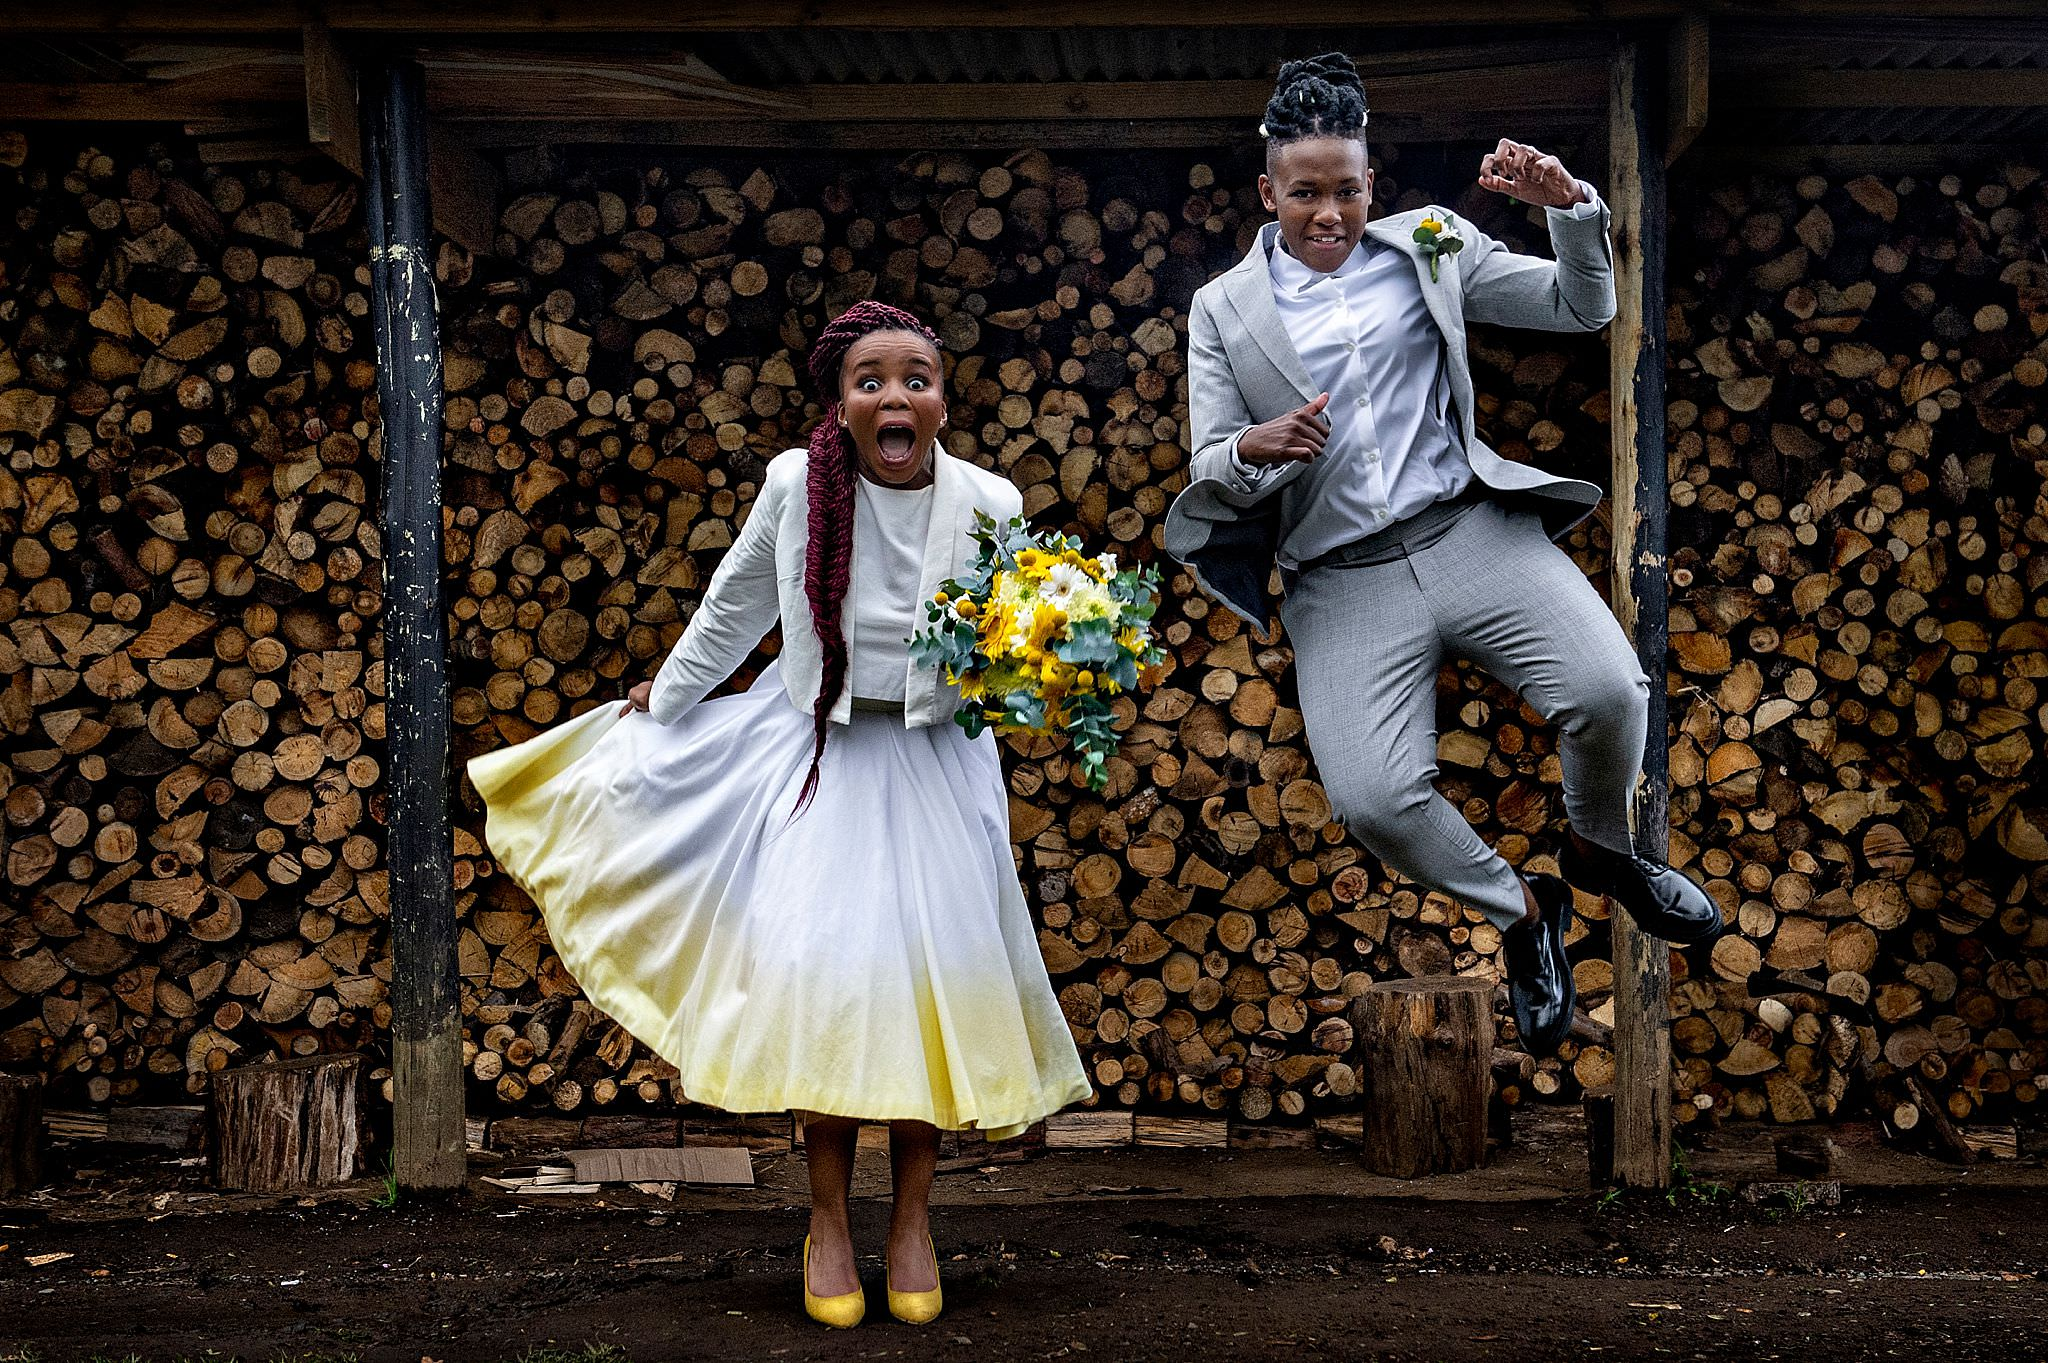 Brides hamming it up against woodpile - photo by Jacki Bruniquel